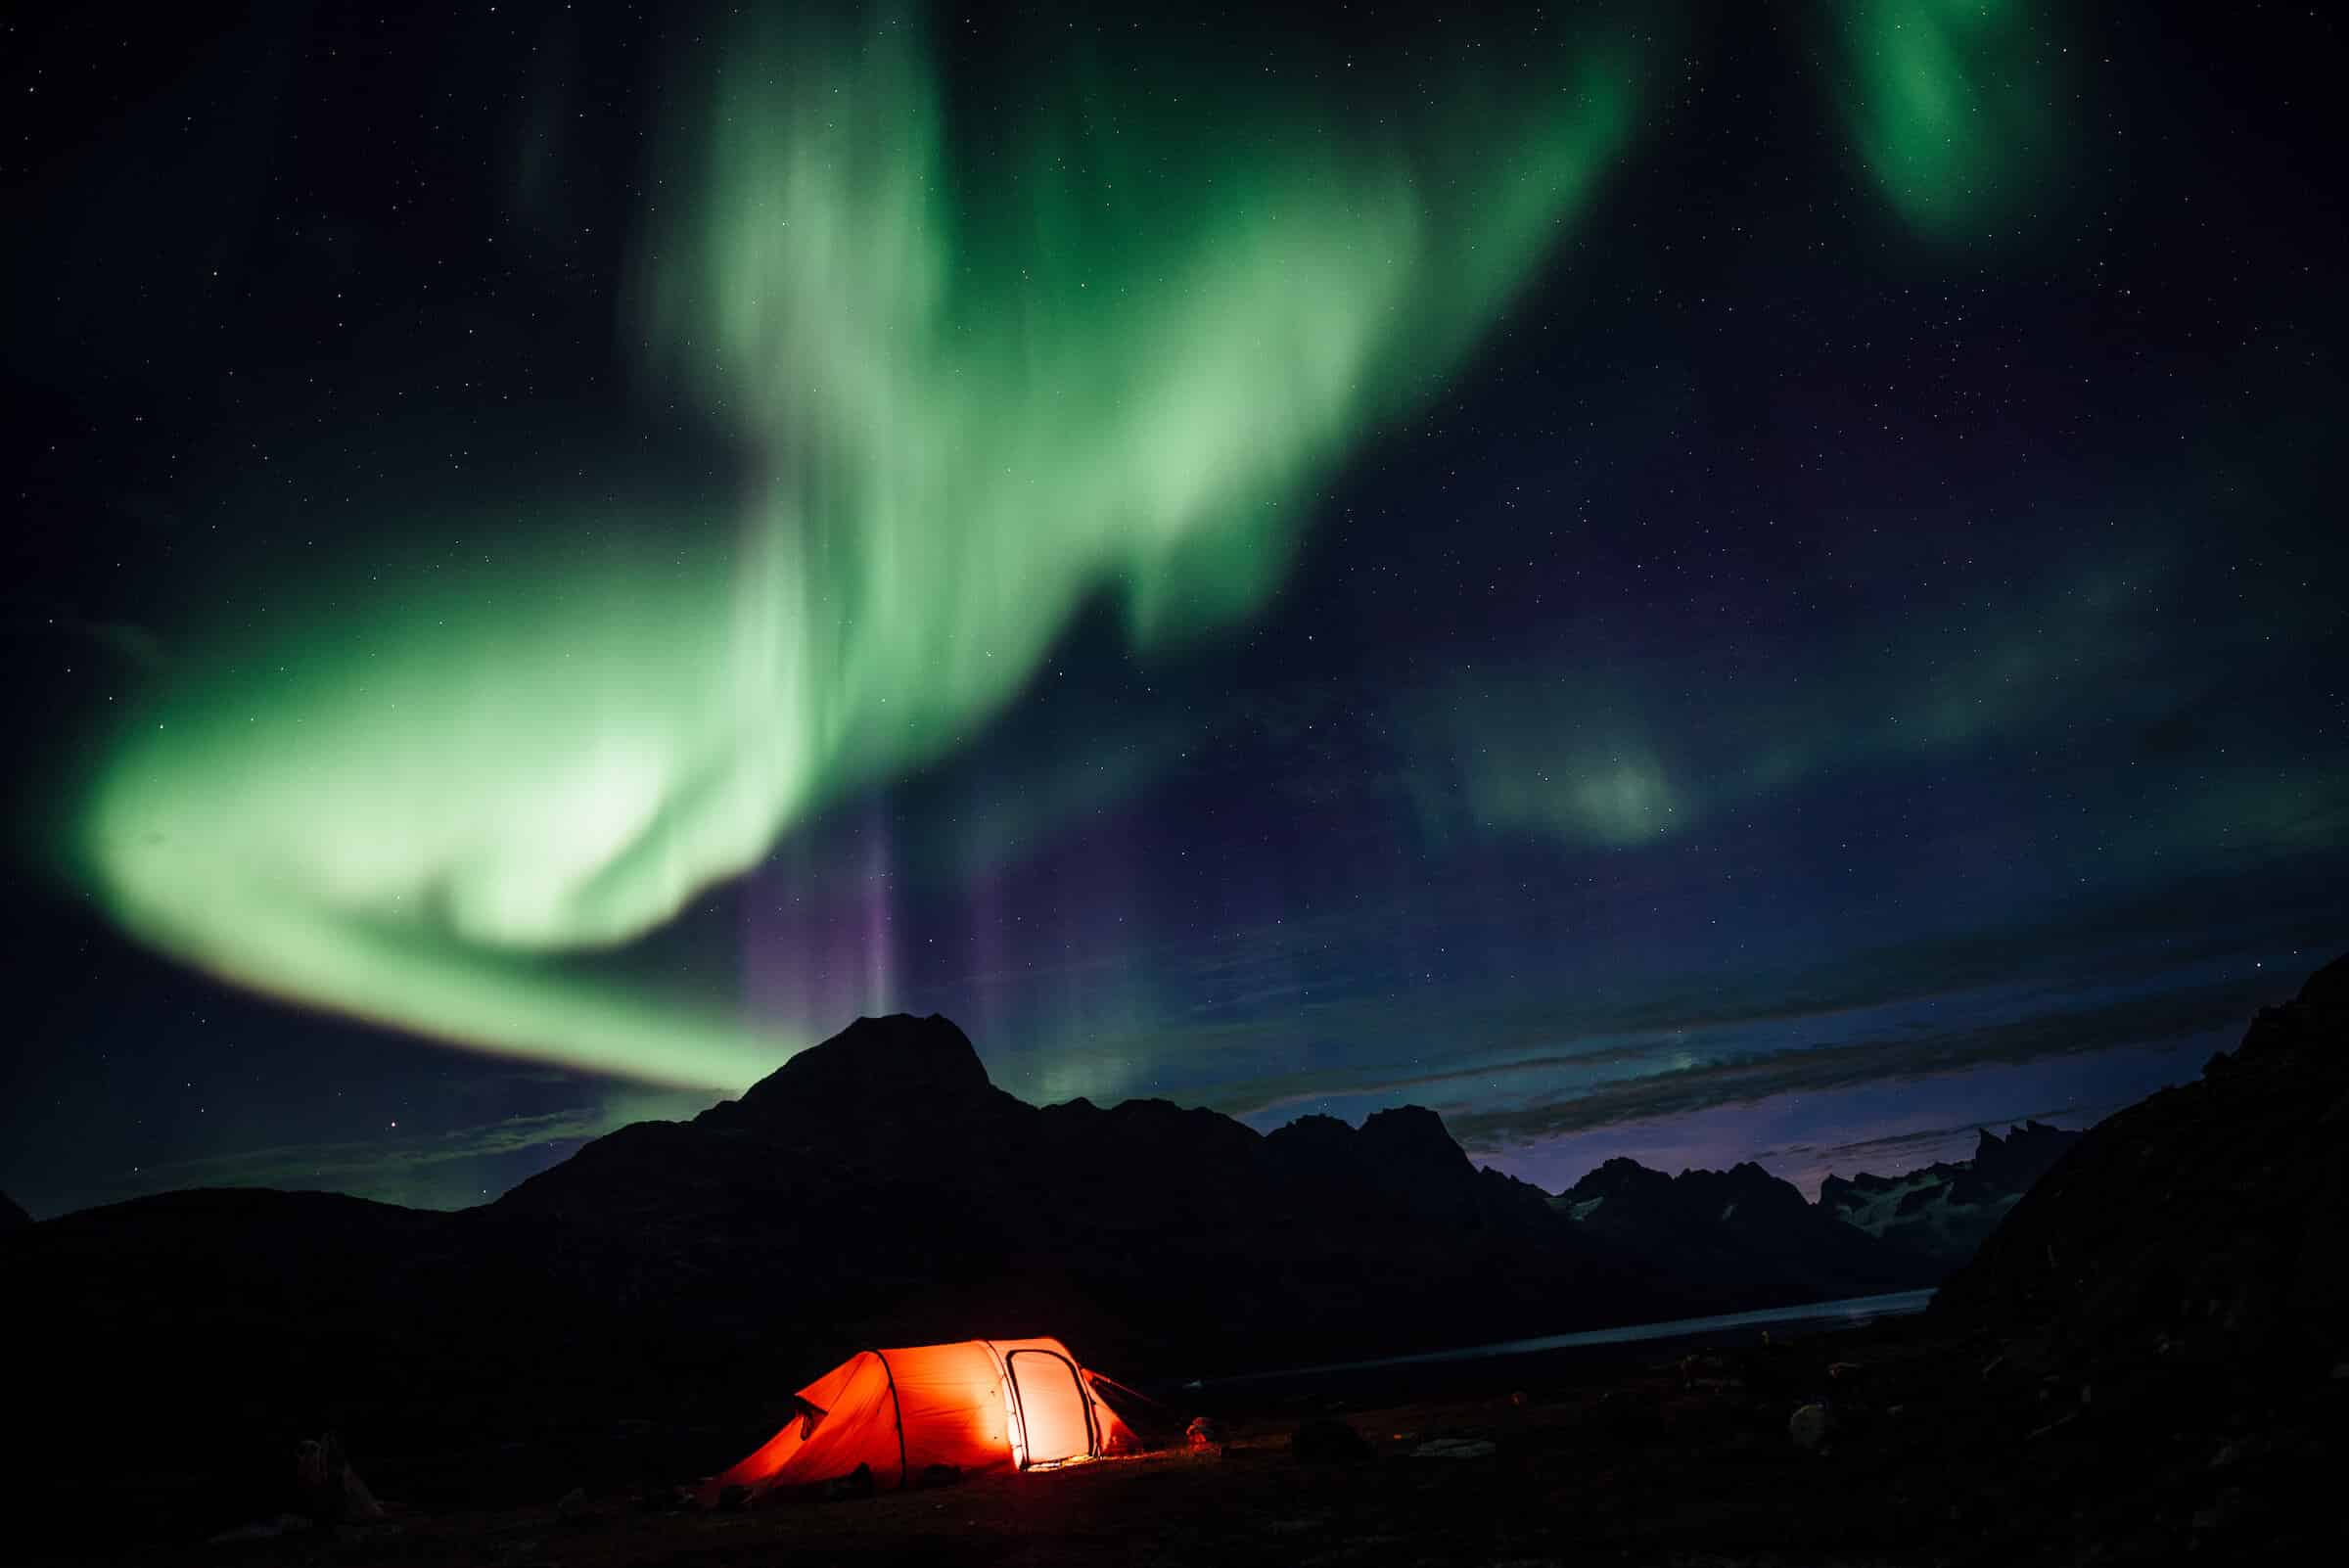 Northern lights over a lit tent, Camp In Tasiilaq Fjord. By Chris Brinlee Jr